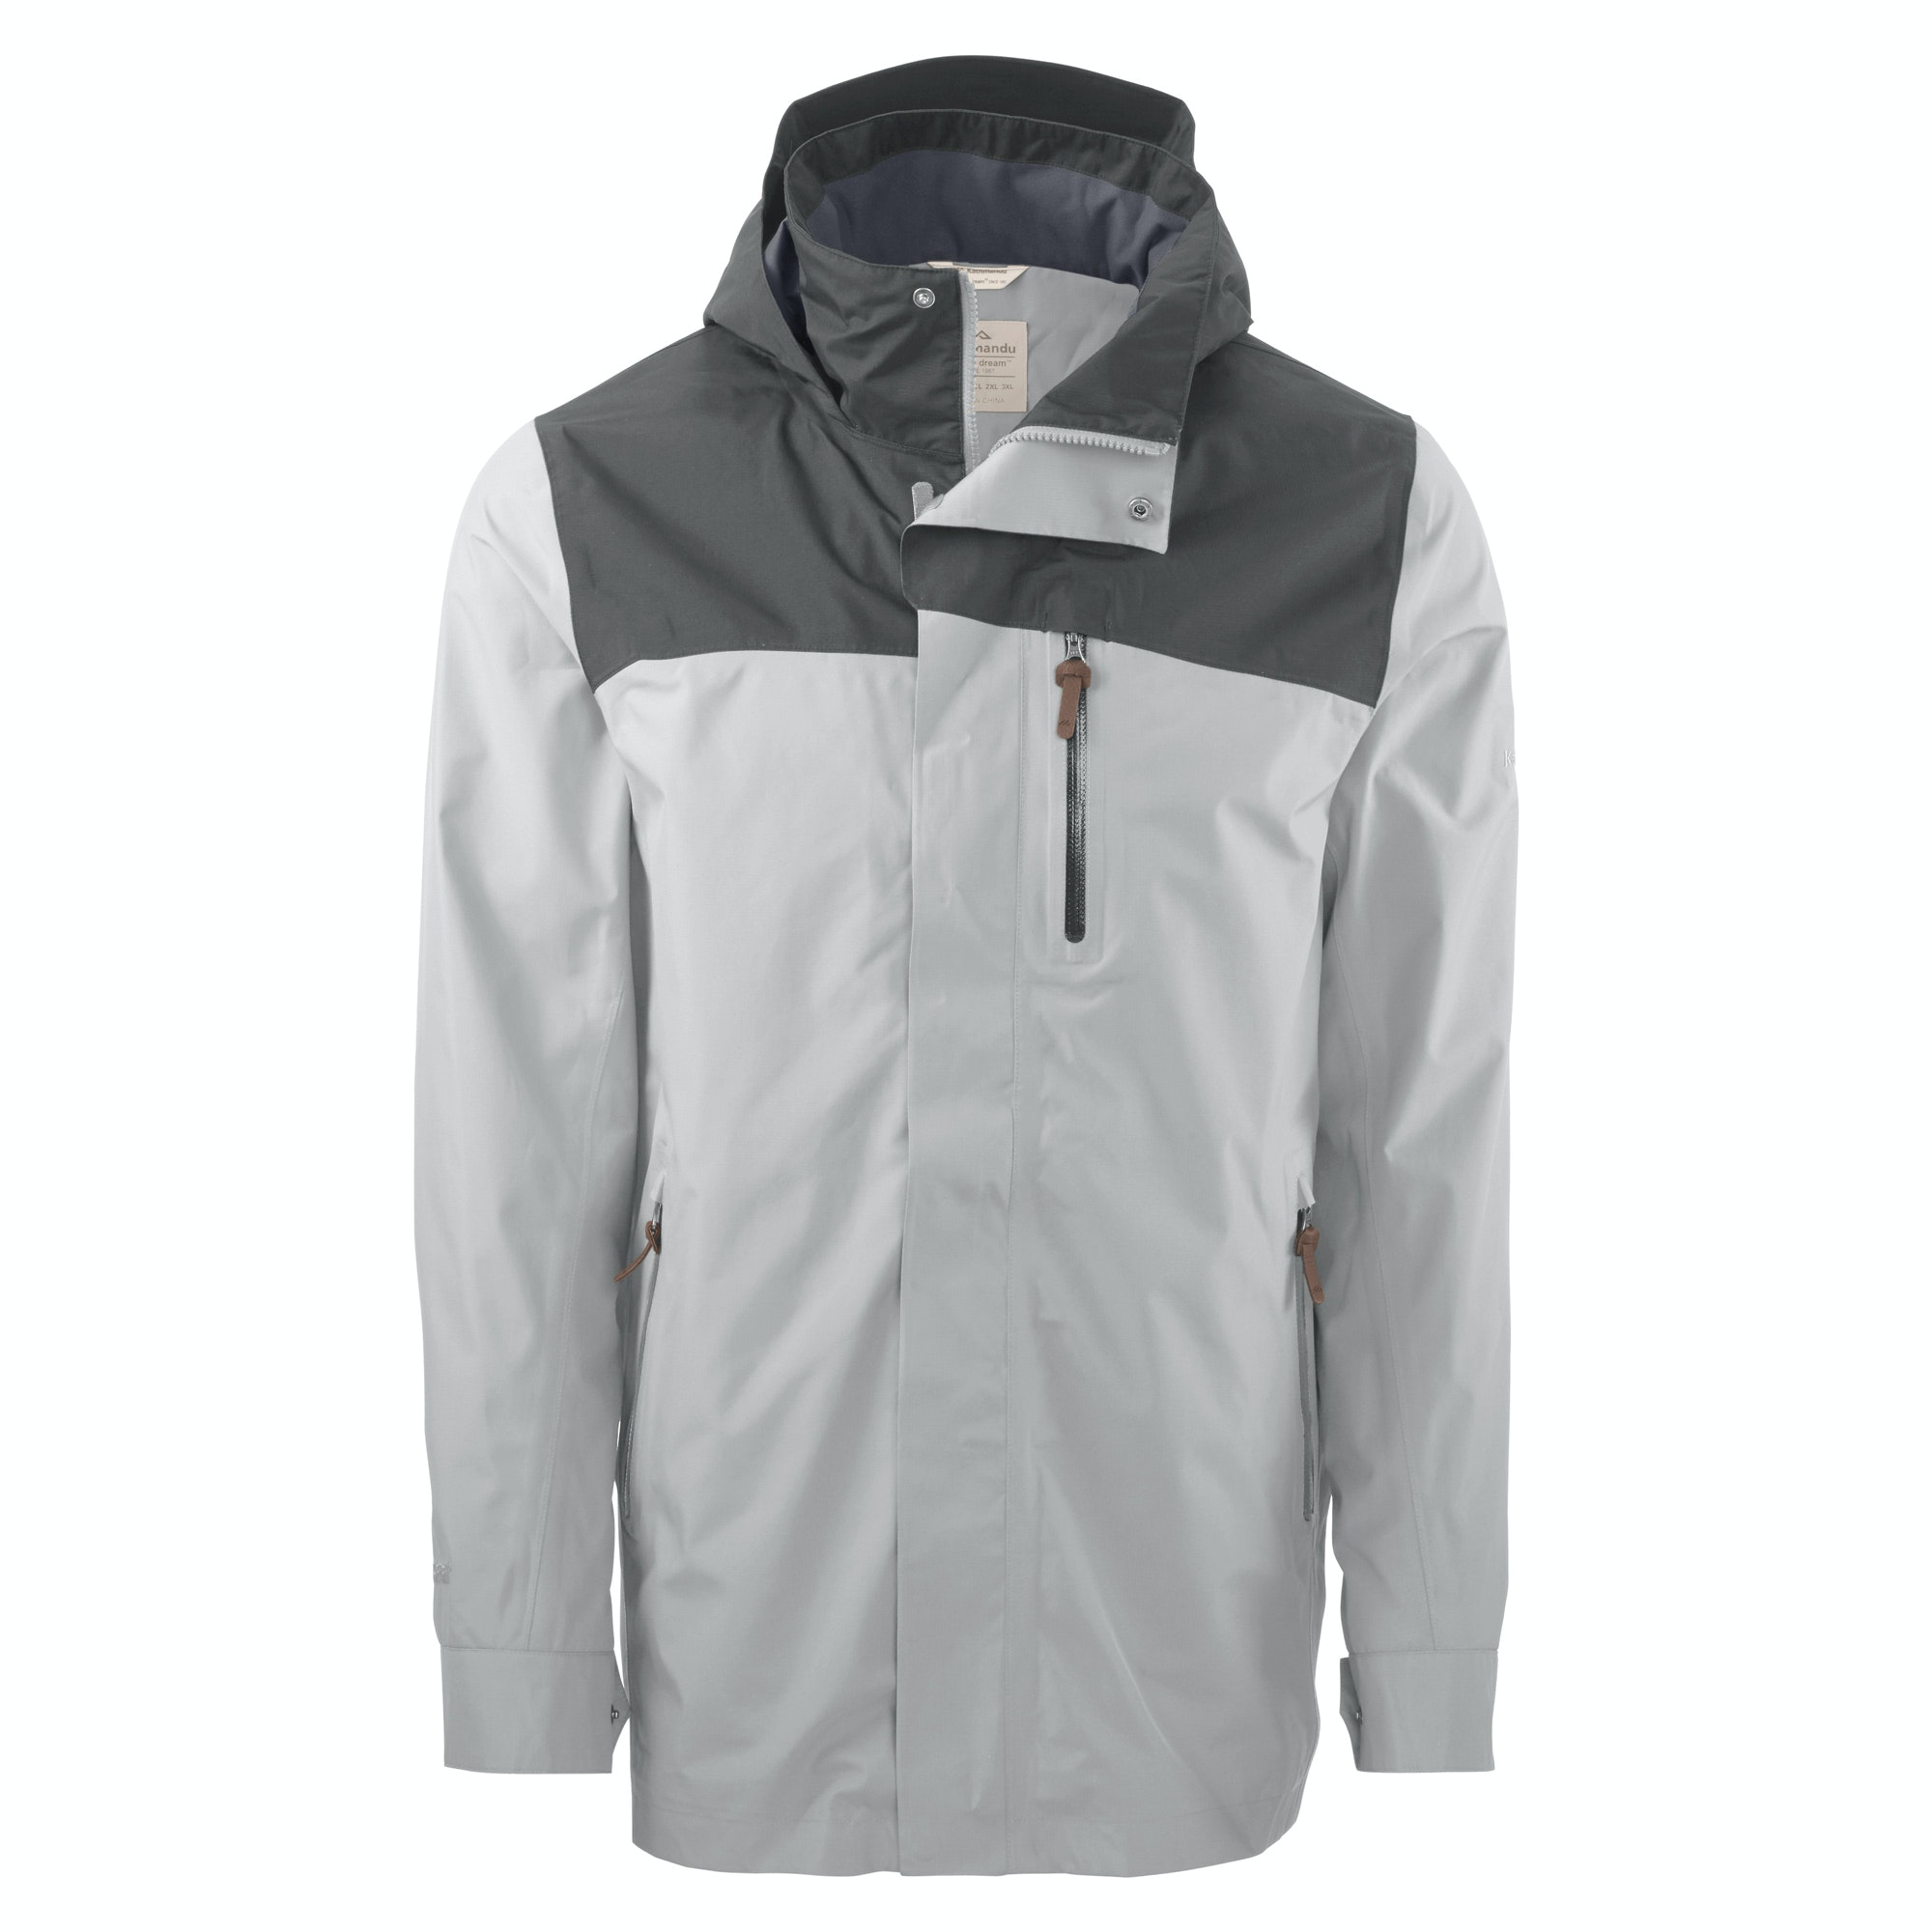 Where to buy gore tex jackets